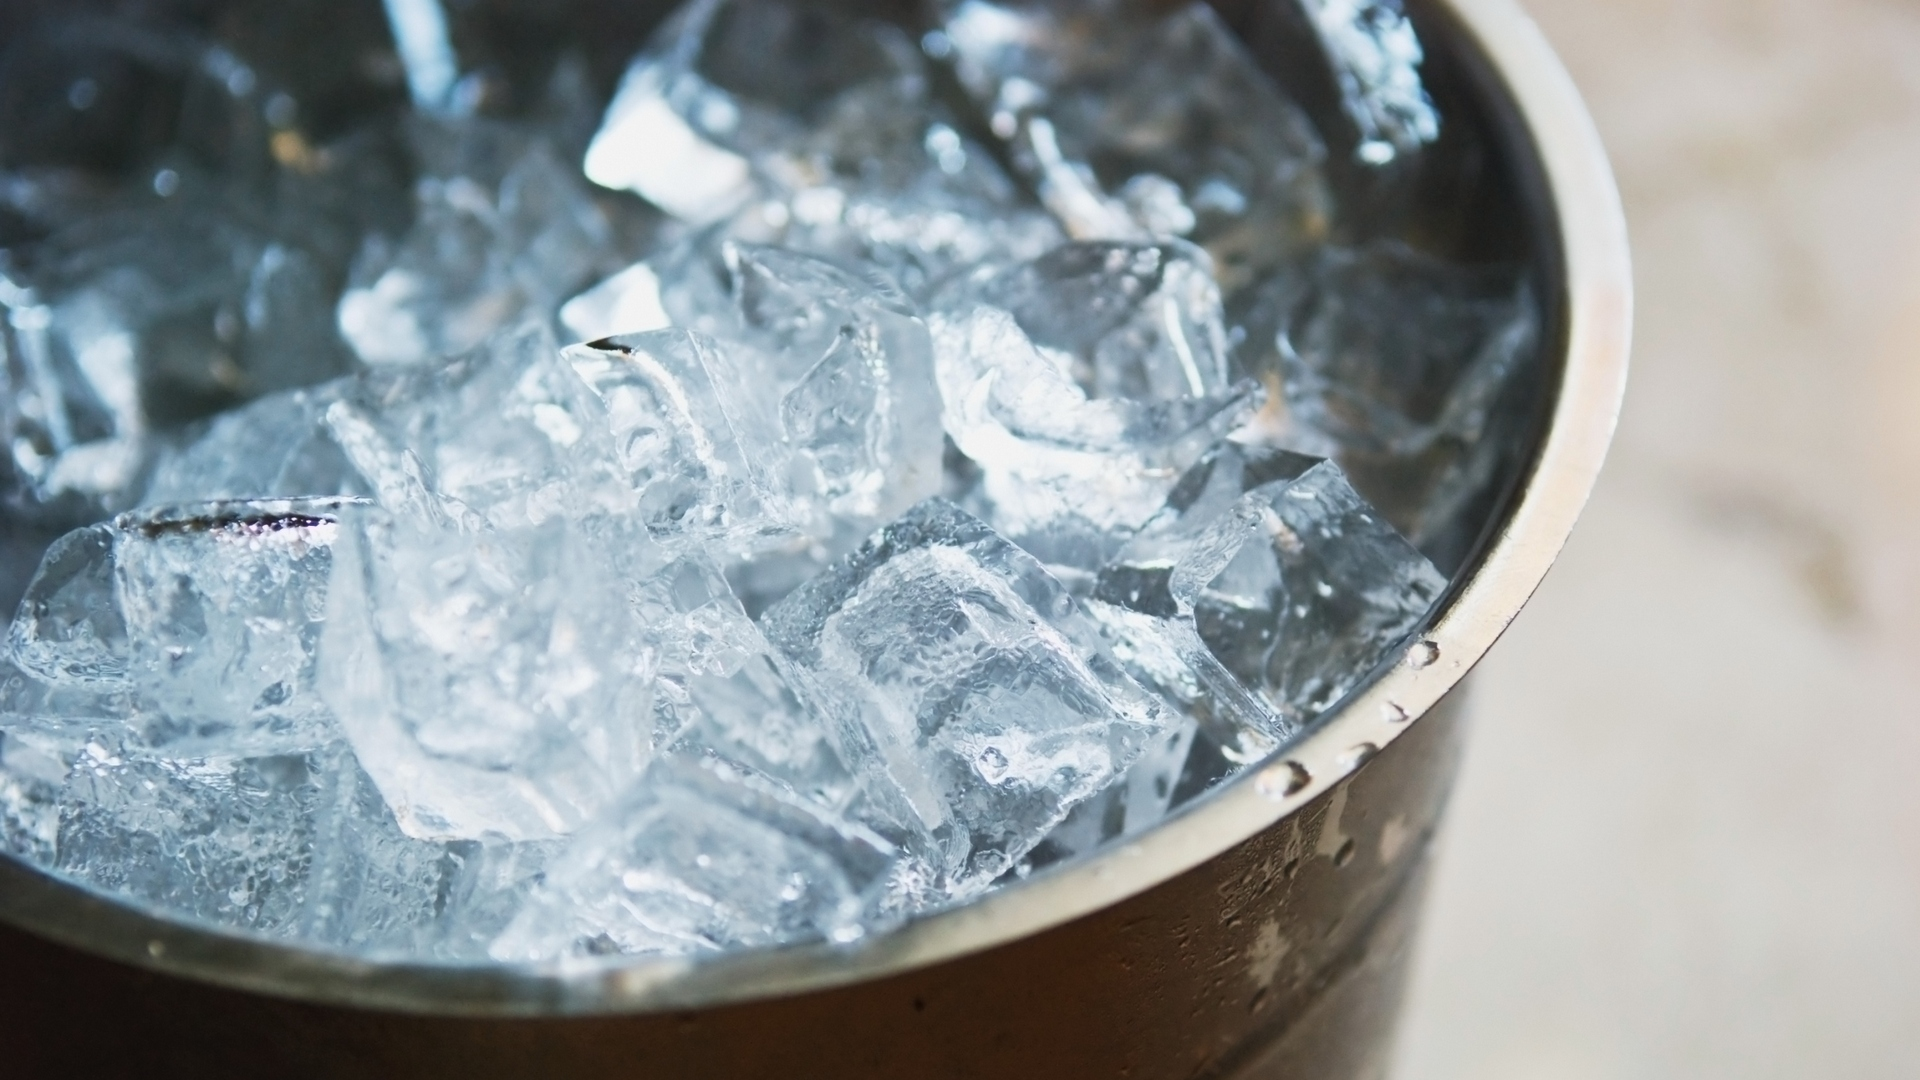 crakmedia has accepted the ice bucket The ice bucket challenge was a phenomenon in the summer of 2014 in which people dunked a bucket of iced water over their heads in order to solicit donations before nominating others to do the same.